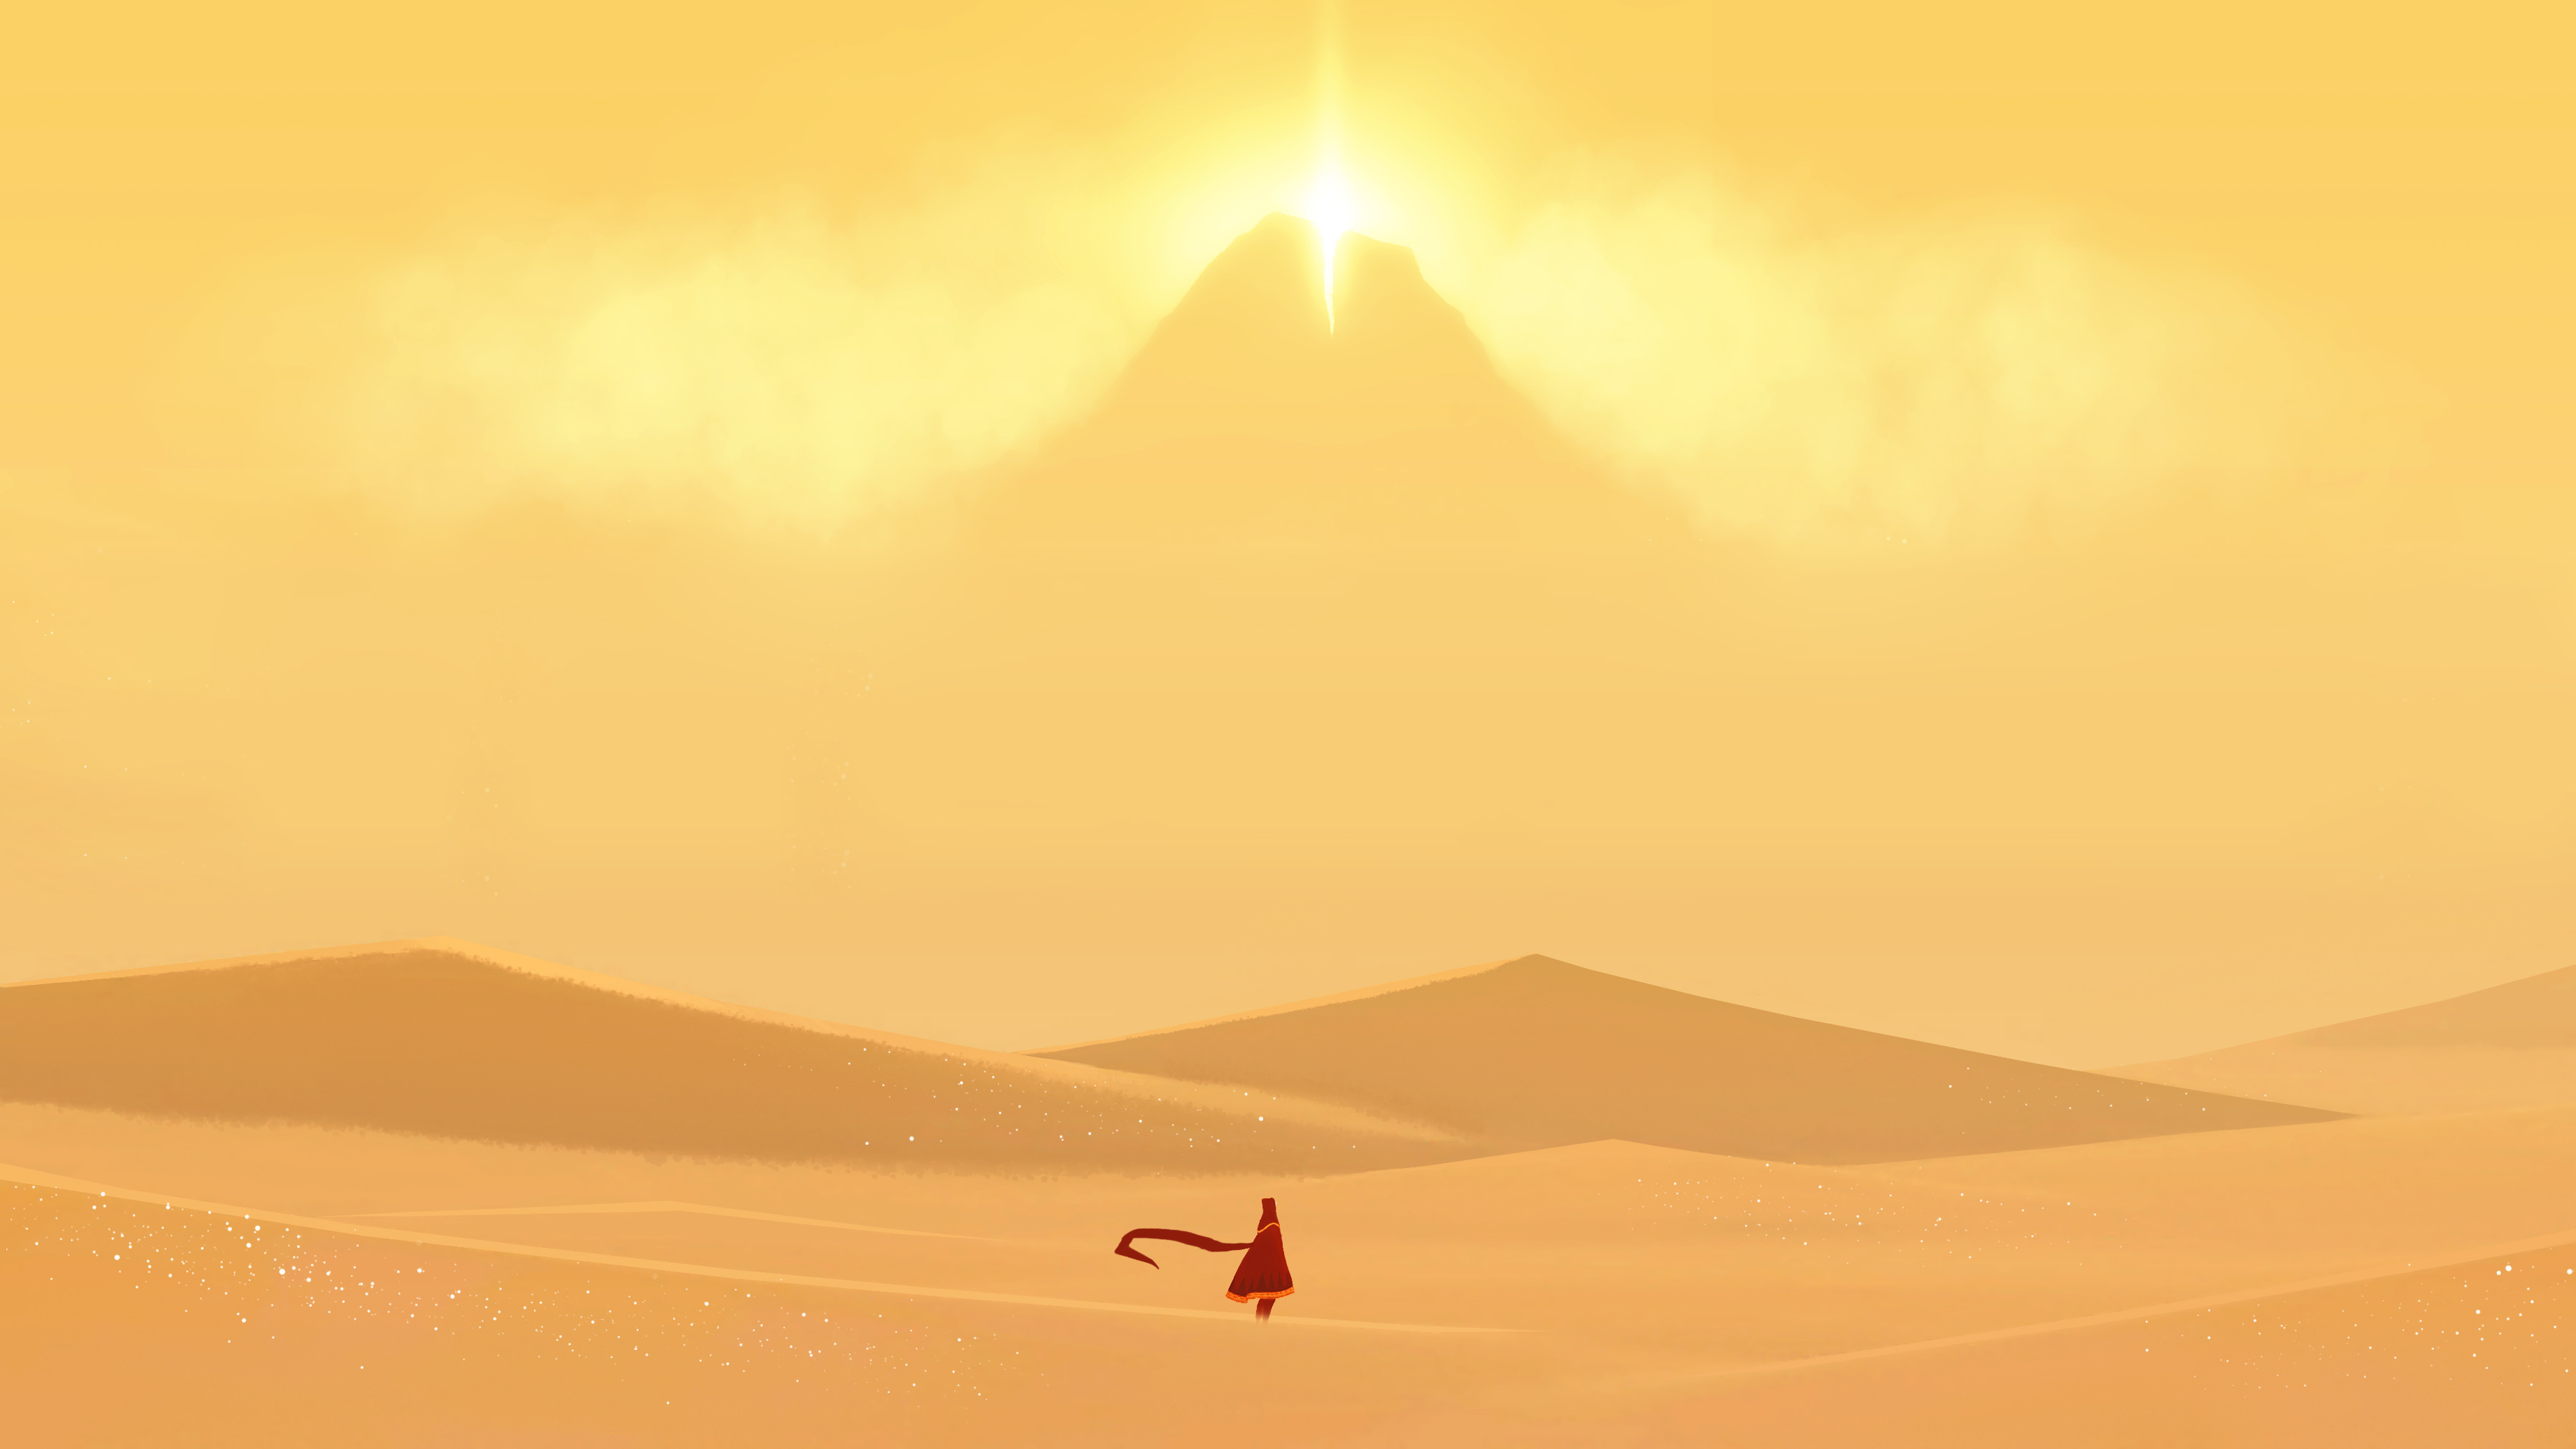 Journey Thatgamecompany Character 002 Control500